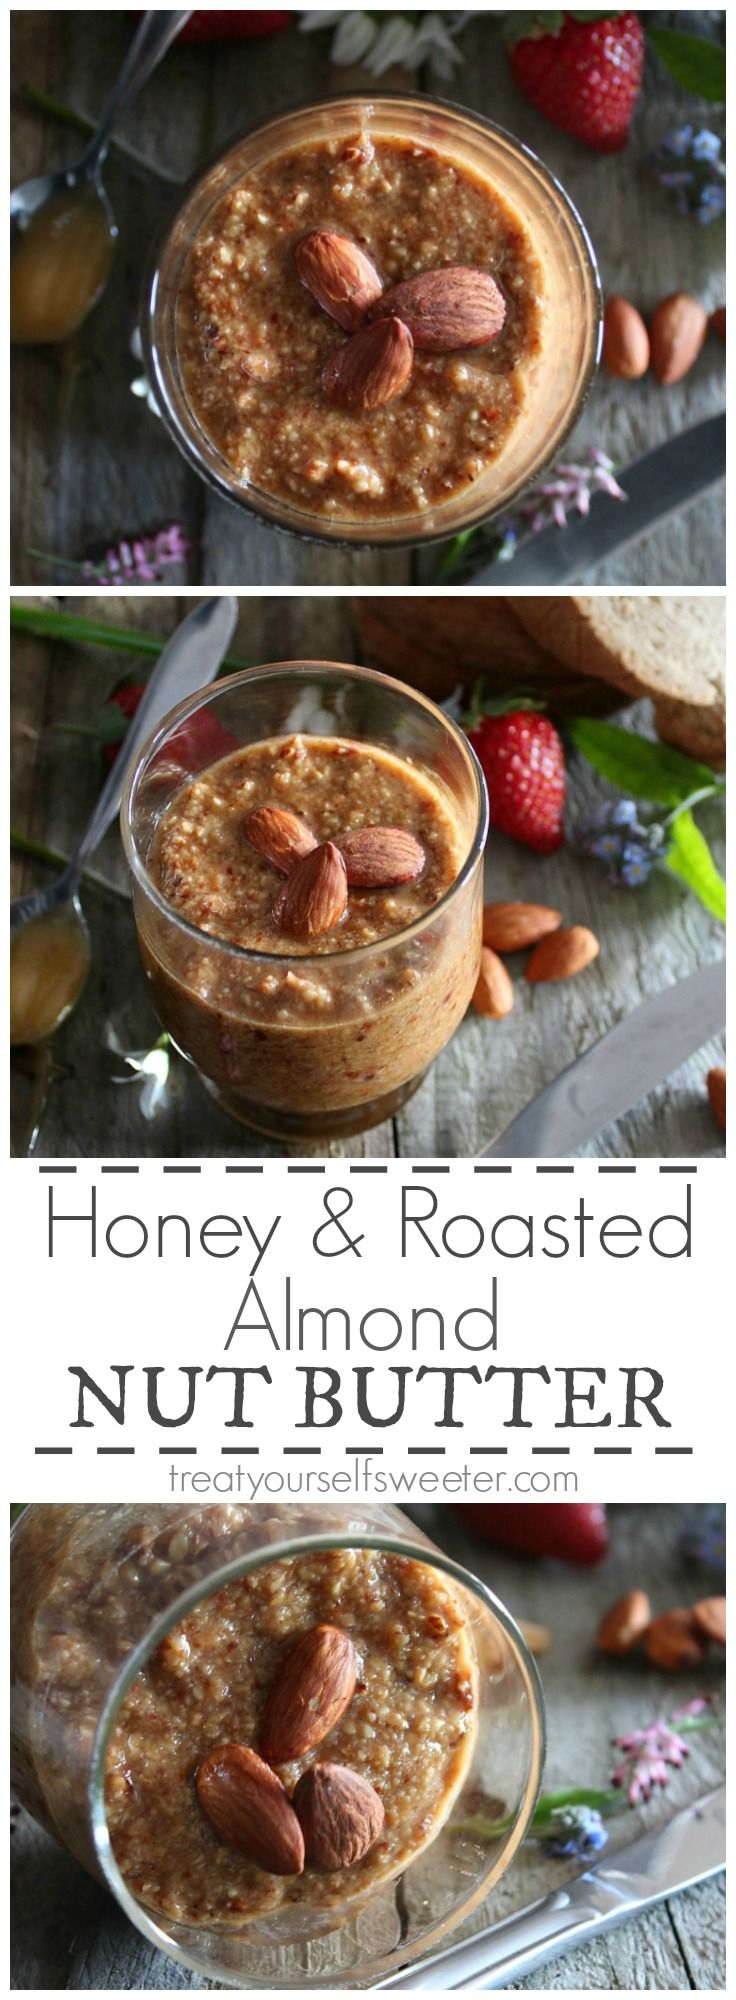 Honeyed Almond Spread; crunchy, salted roasted almond spread with a sweet hint of honey. Perfectly delicious!